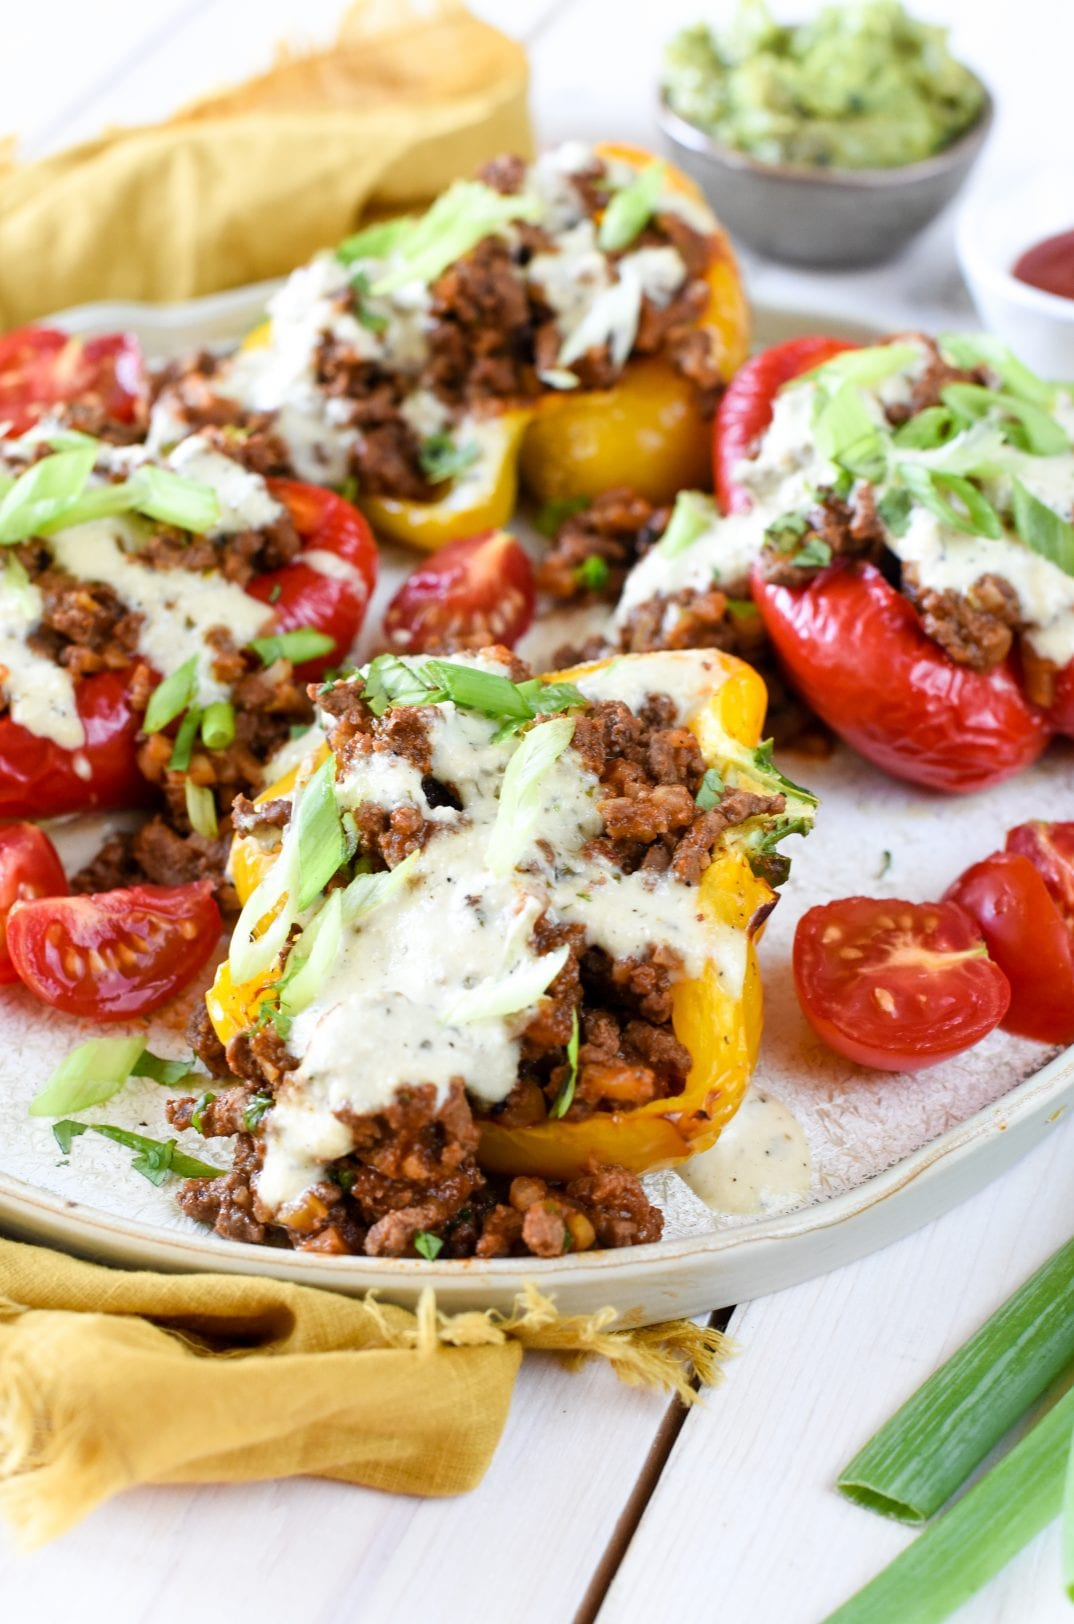 Healthy Whole30 Stuffed Peppers with Avocado Cashew Sauce